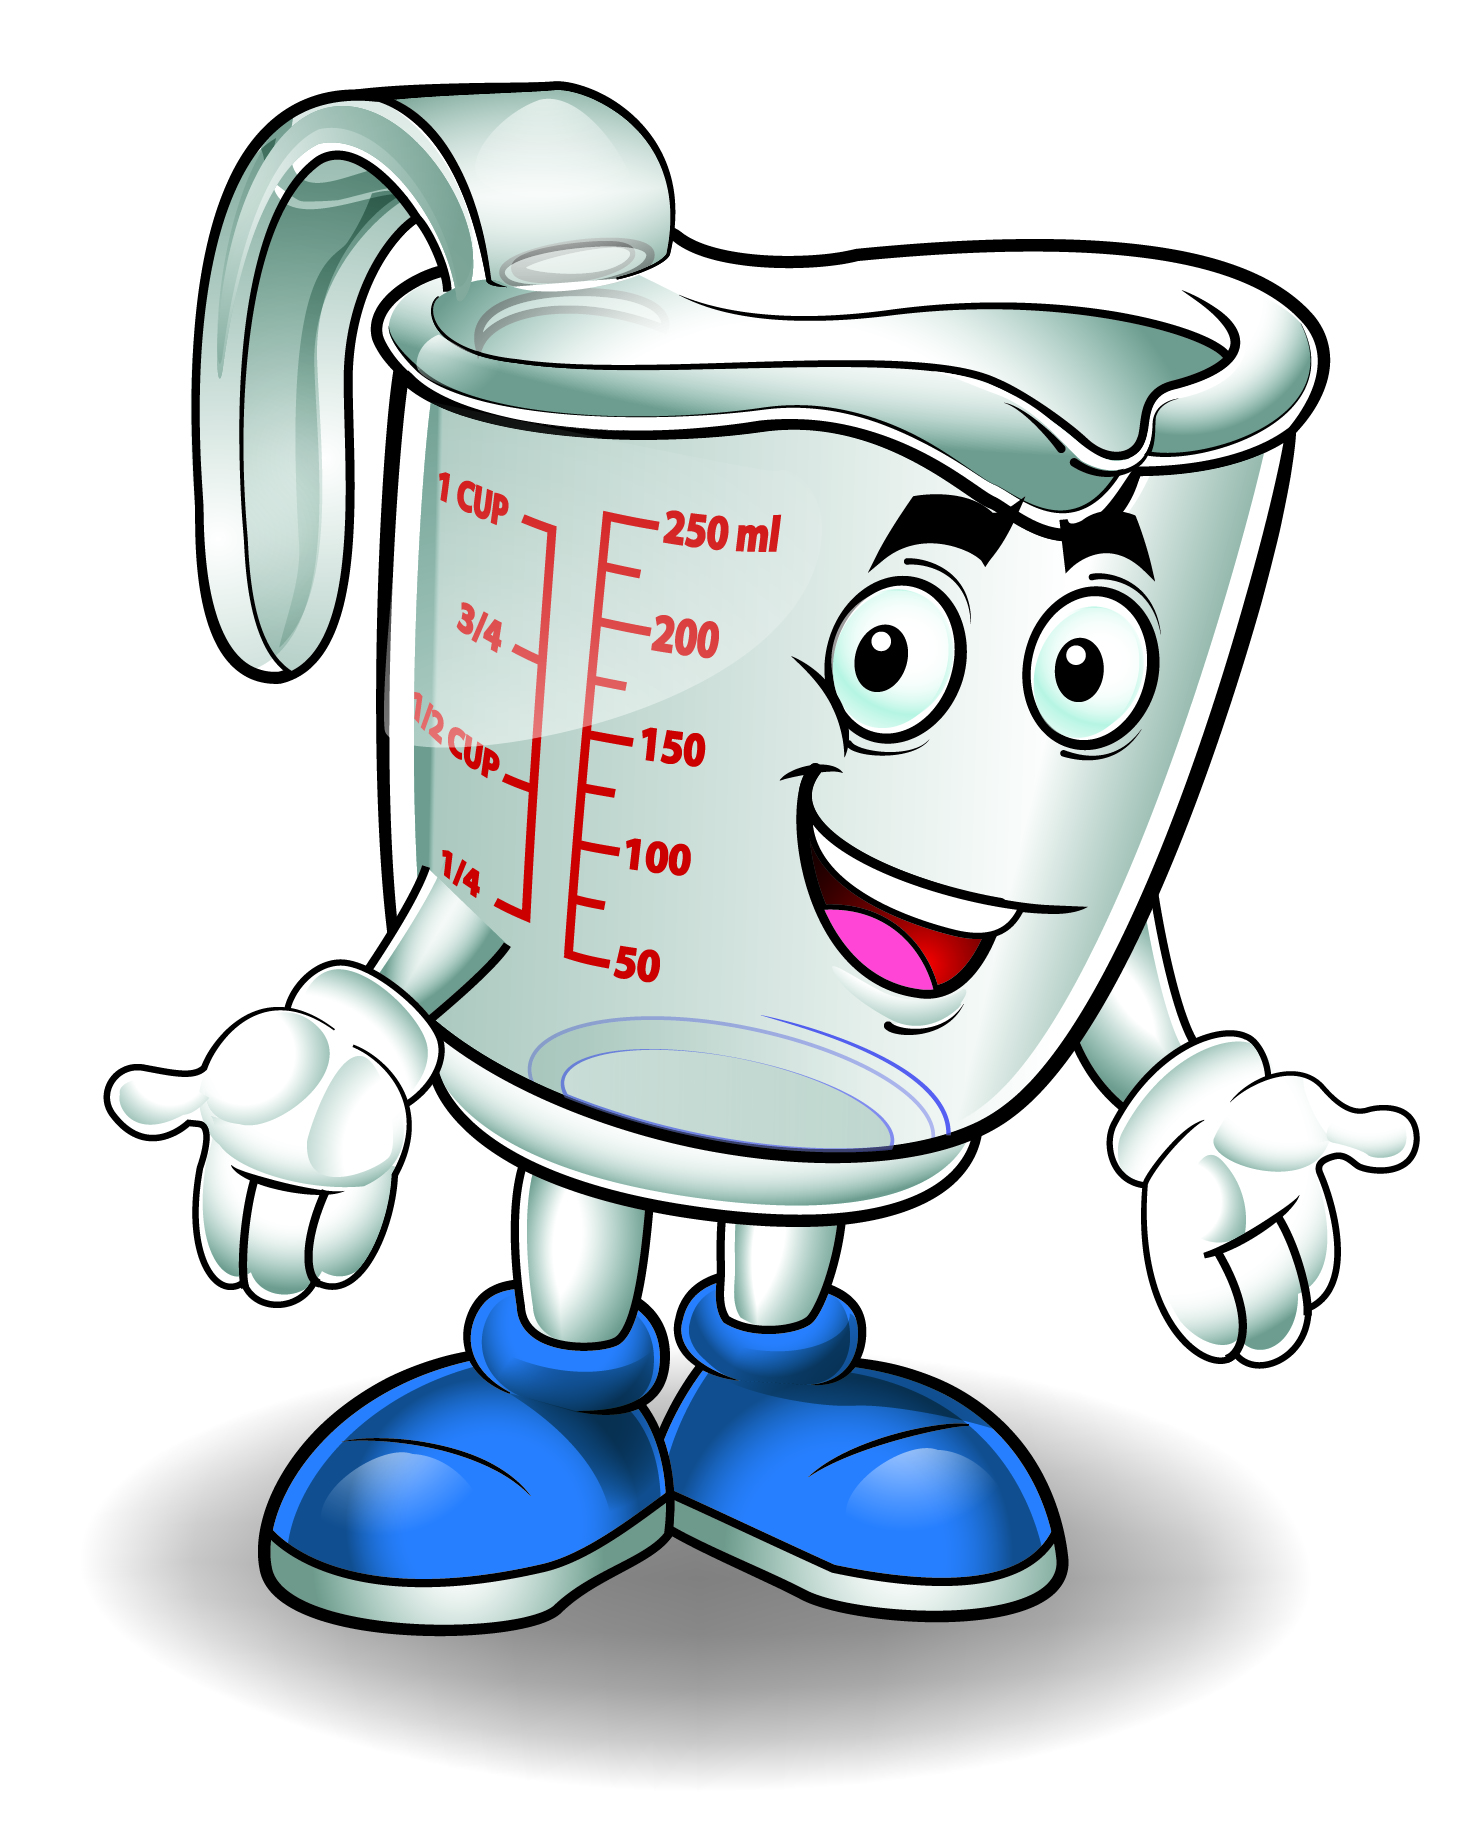 Measuring Cup Mascot